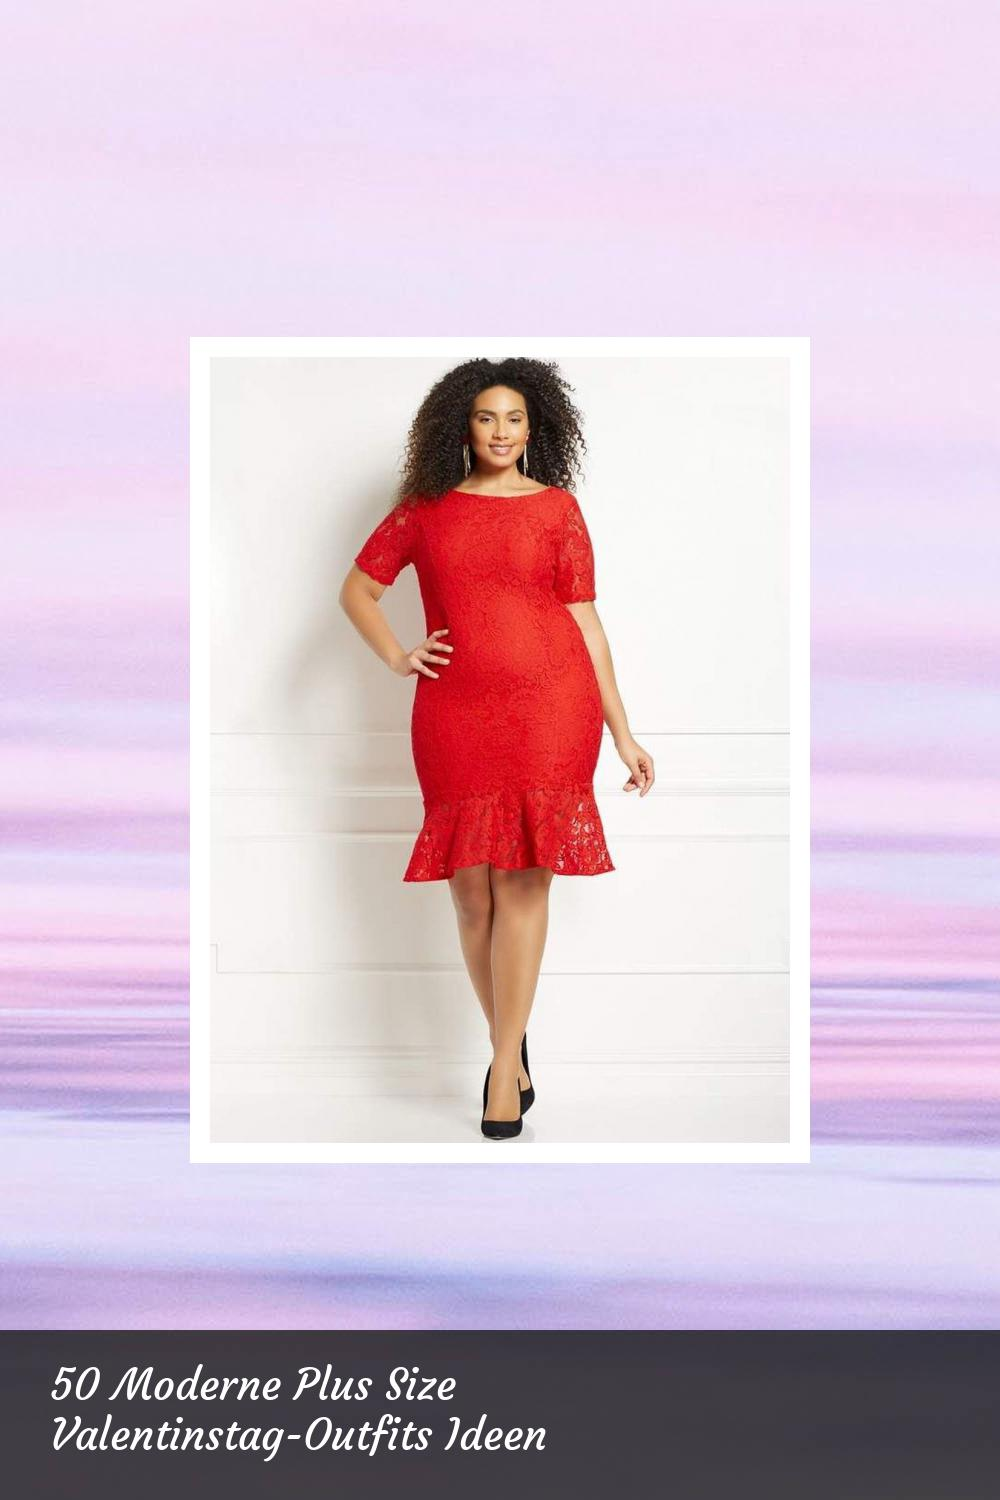 50 Moderne Plus Size Valentinstag-Outfits Ideen 25